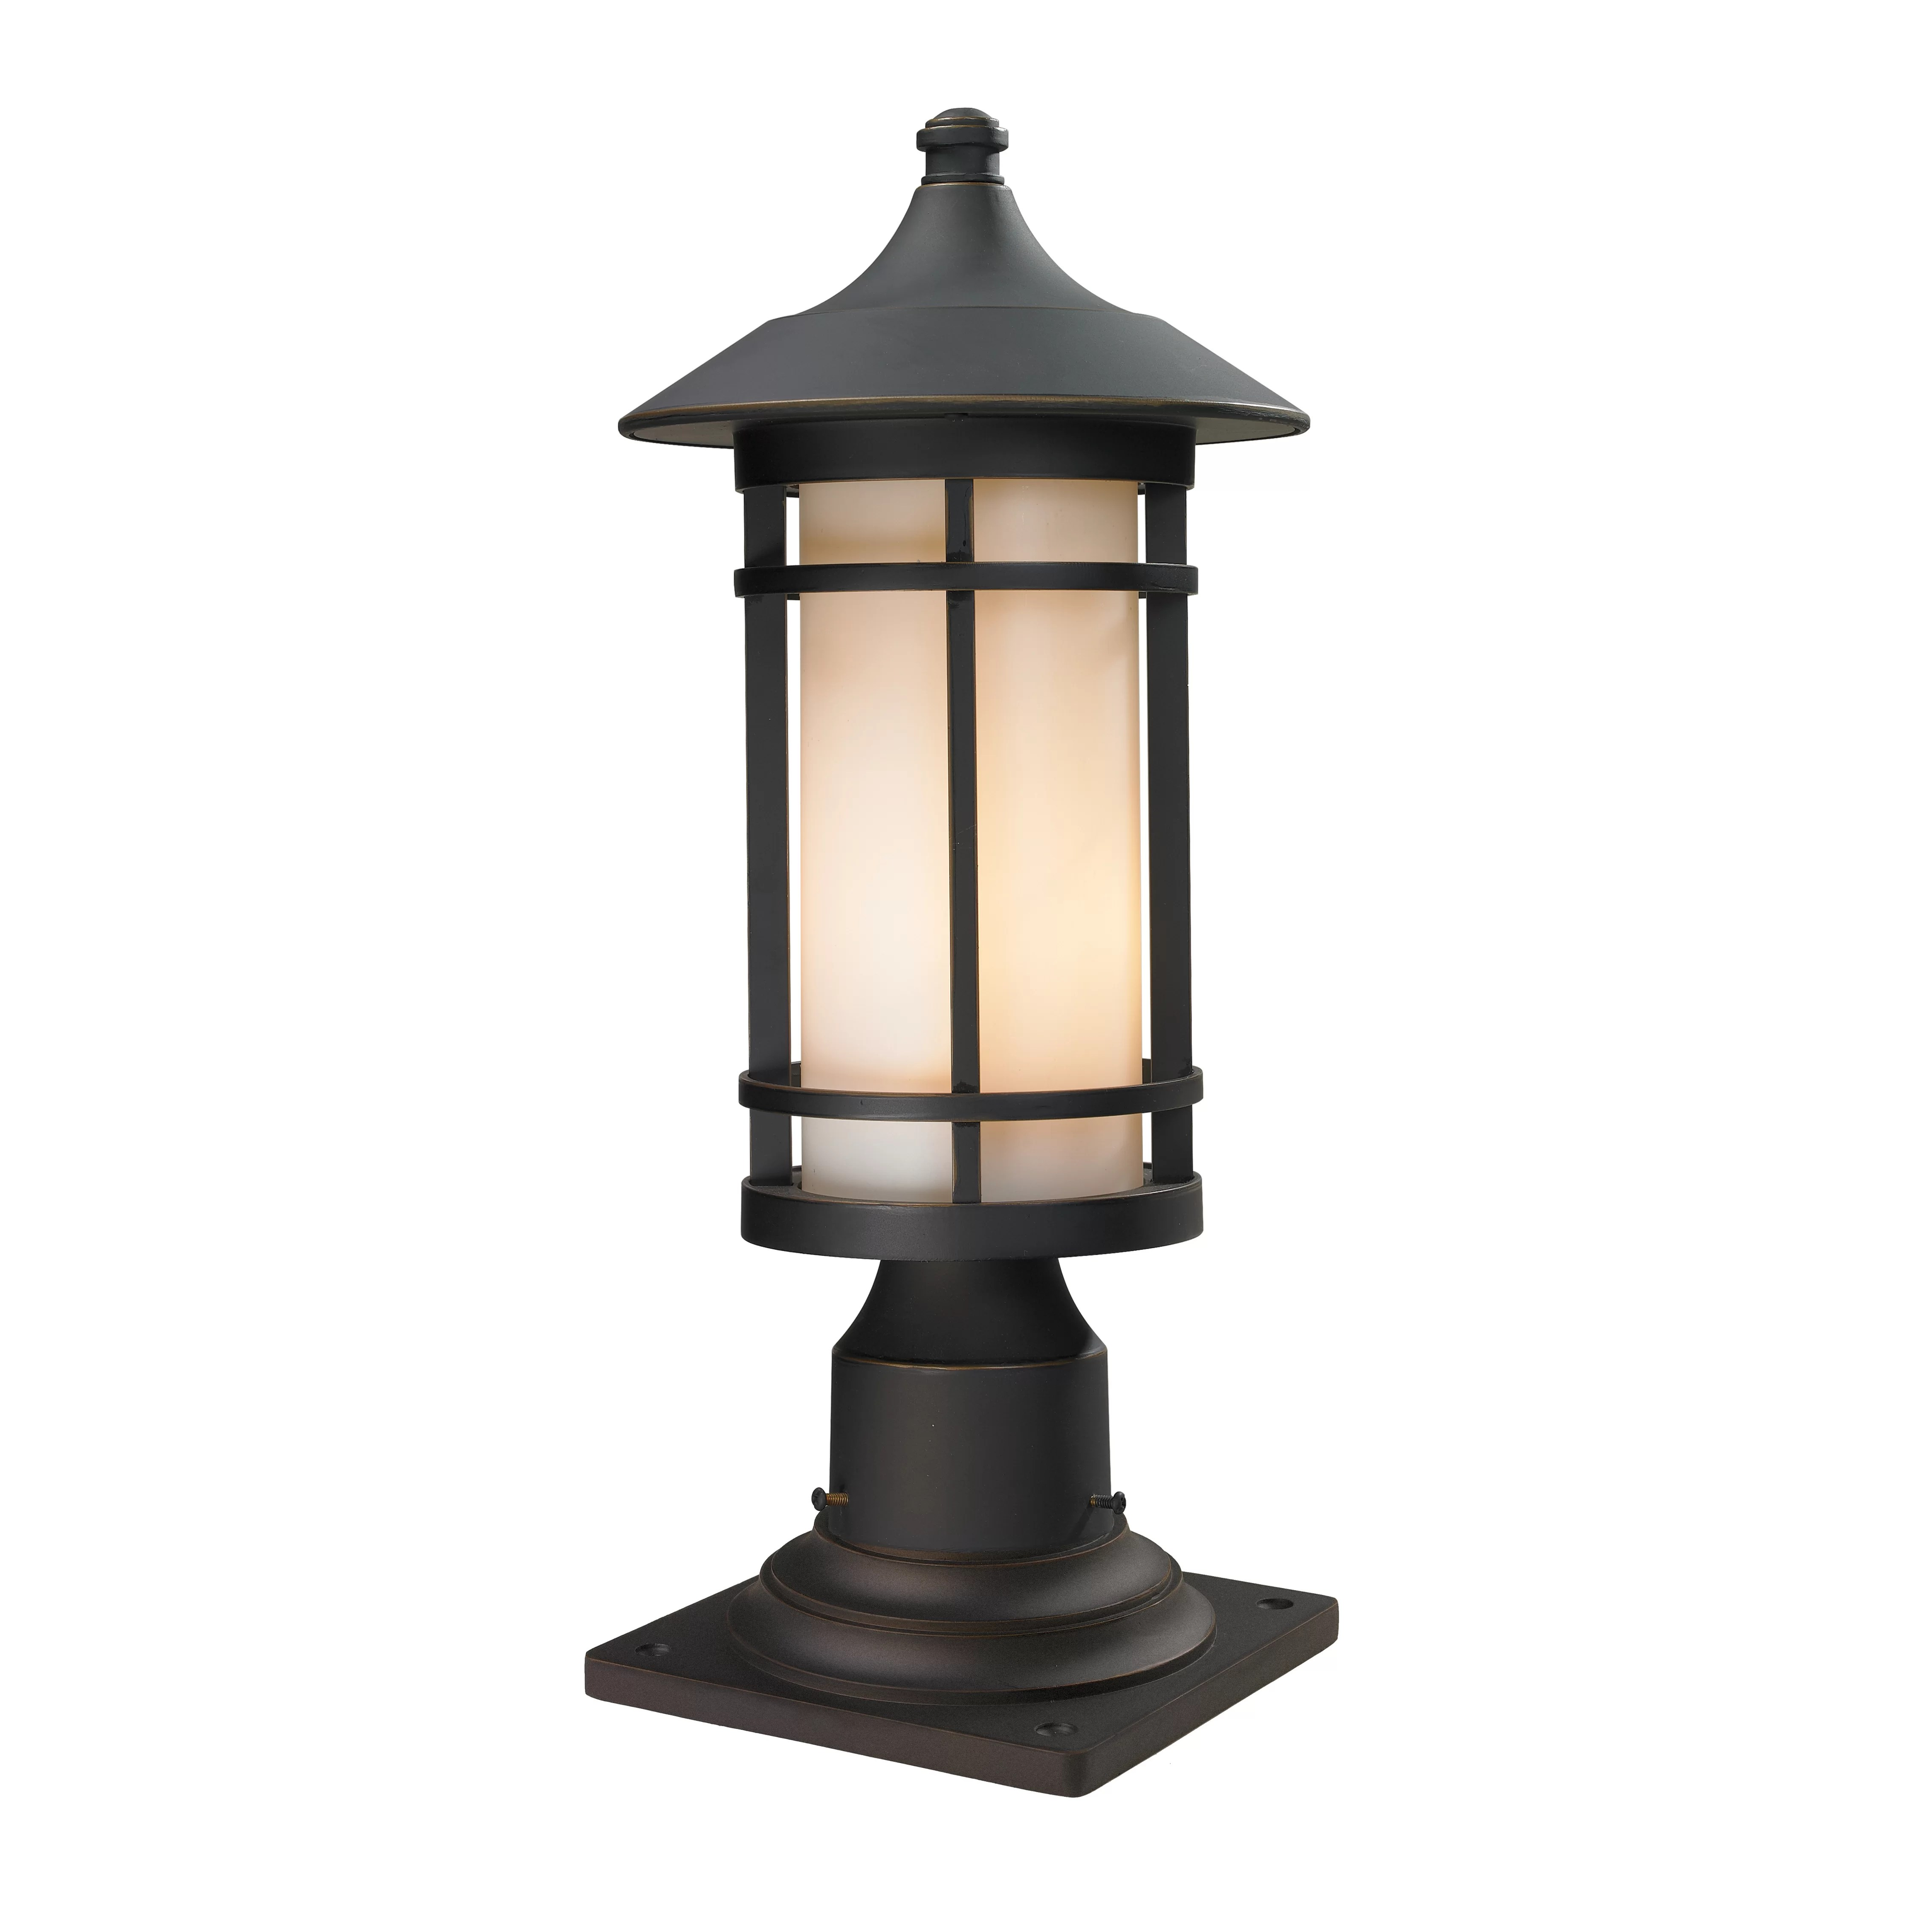 Wayfair Orb Lighting Z-lite Woodland 1 Light Outdoor Pier Mount Light & Reviews